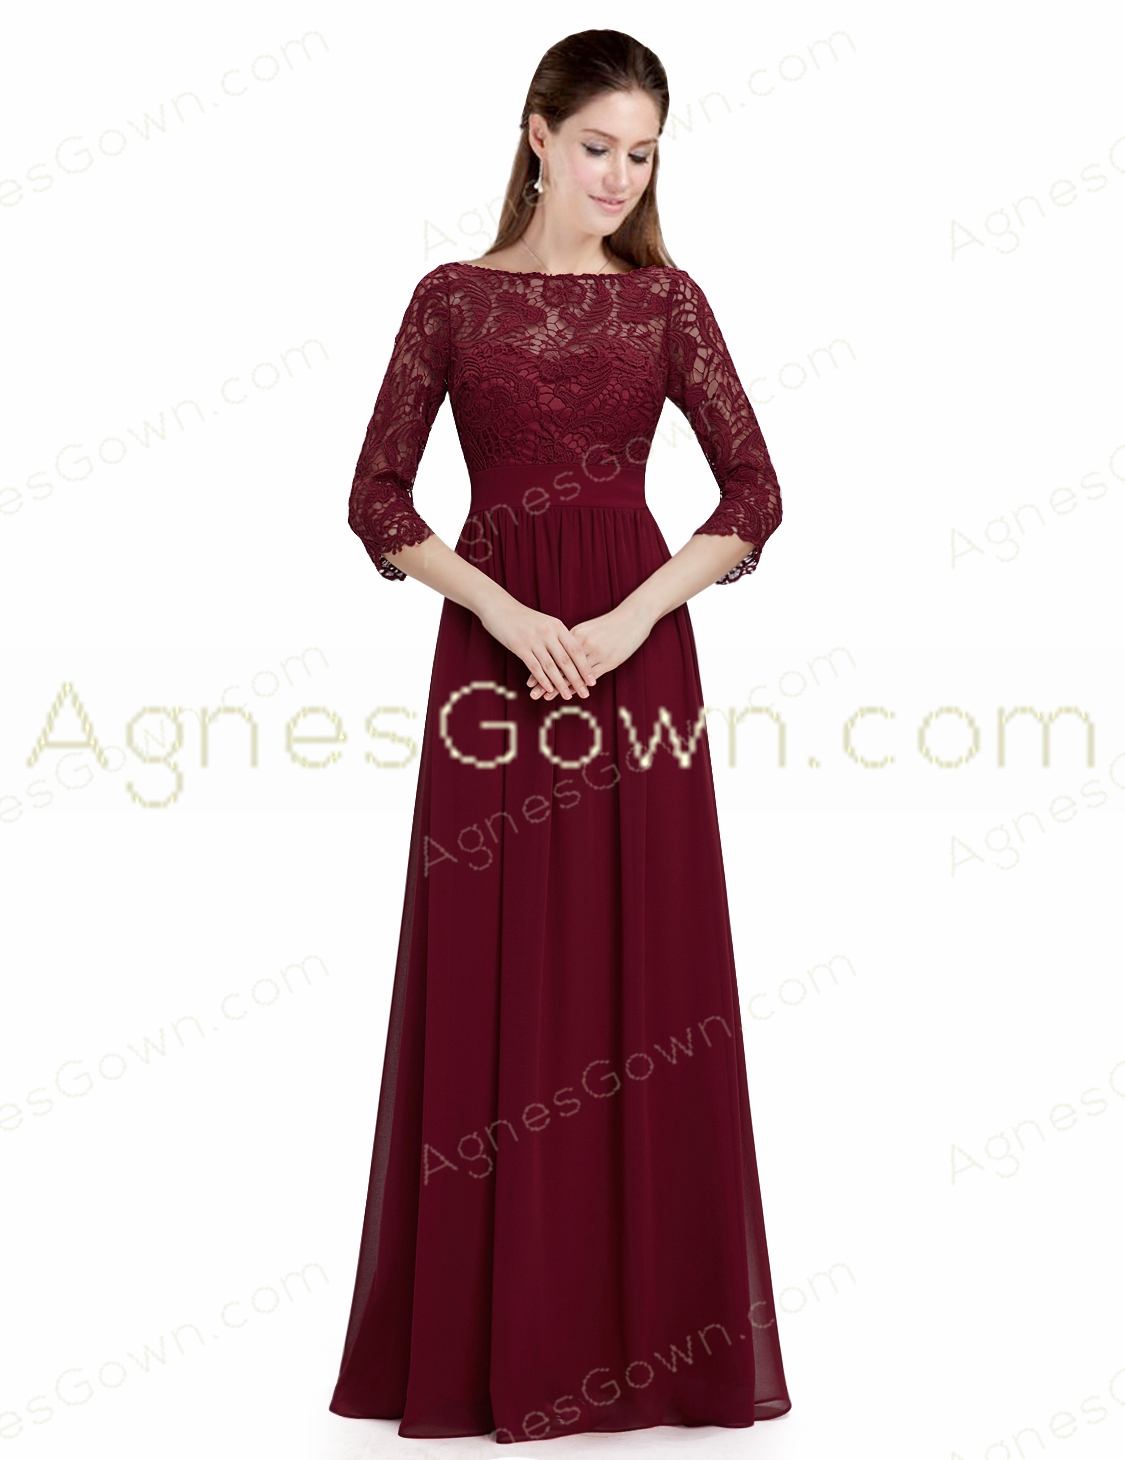 3/4 Sleeves Burgundy Lace Mother Of The Bride Dress